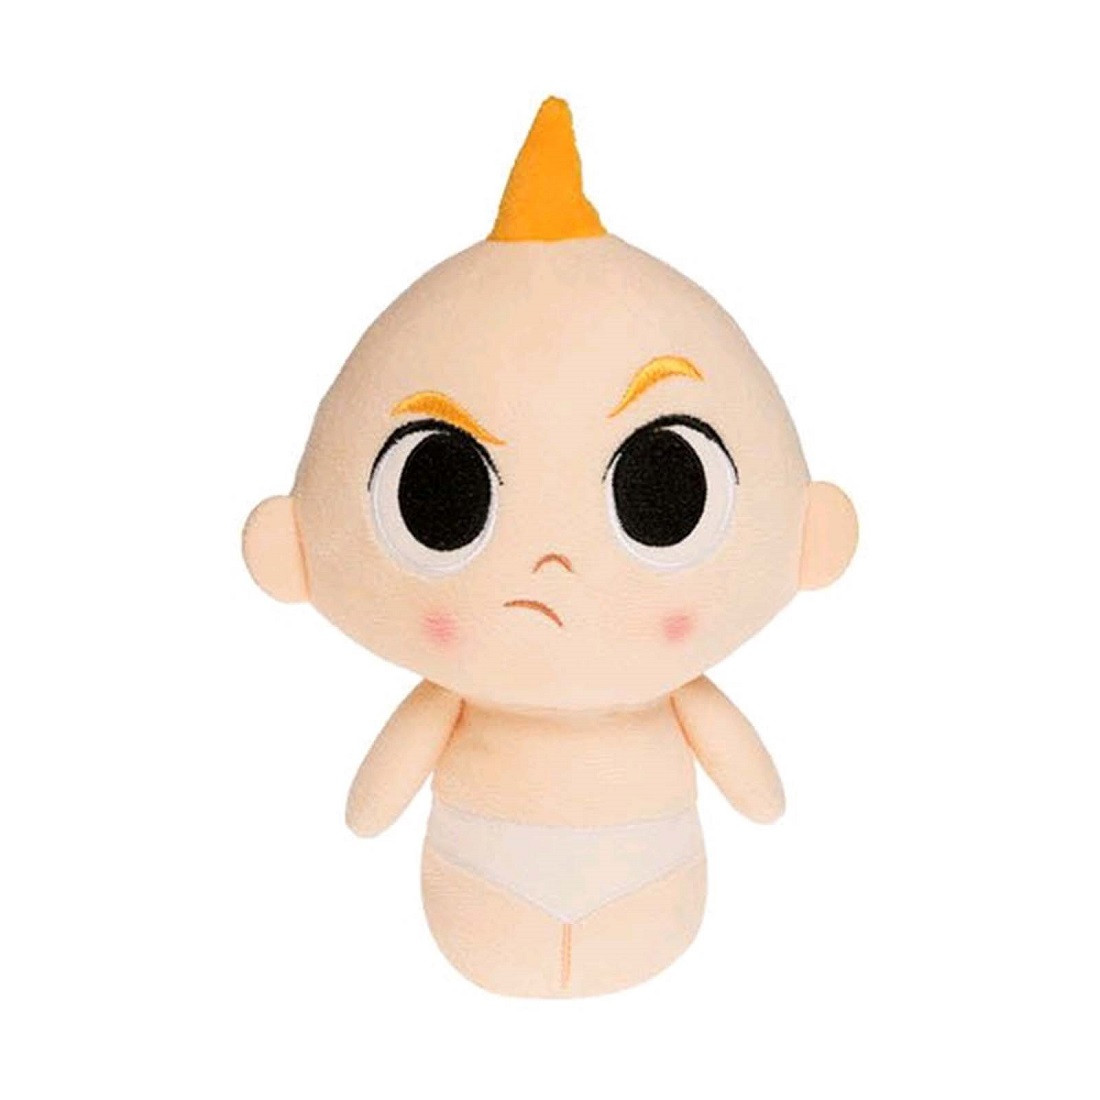 Plush Toy - Incredibles - SuperCute Collectible - Baby Jack Jack